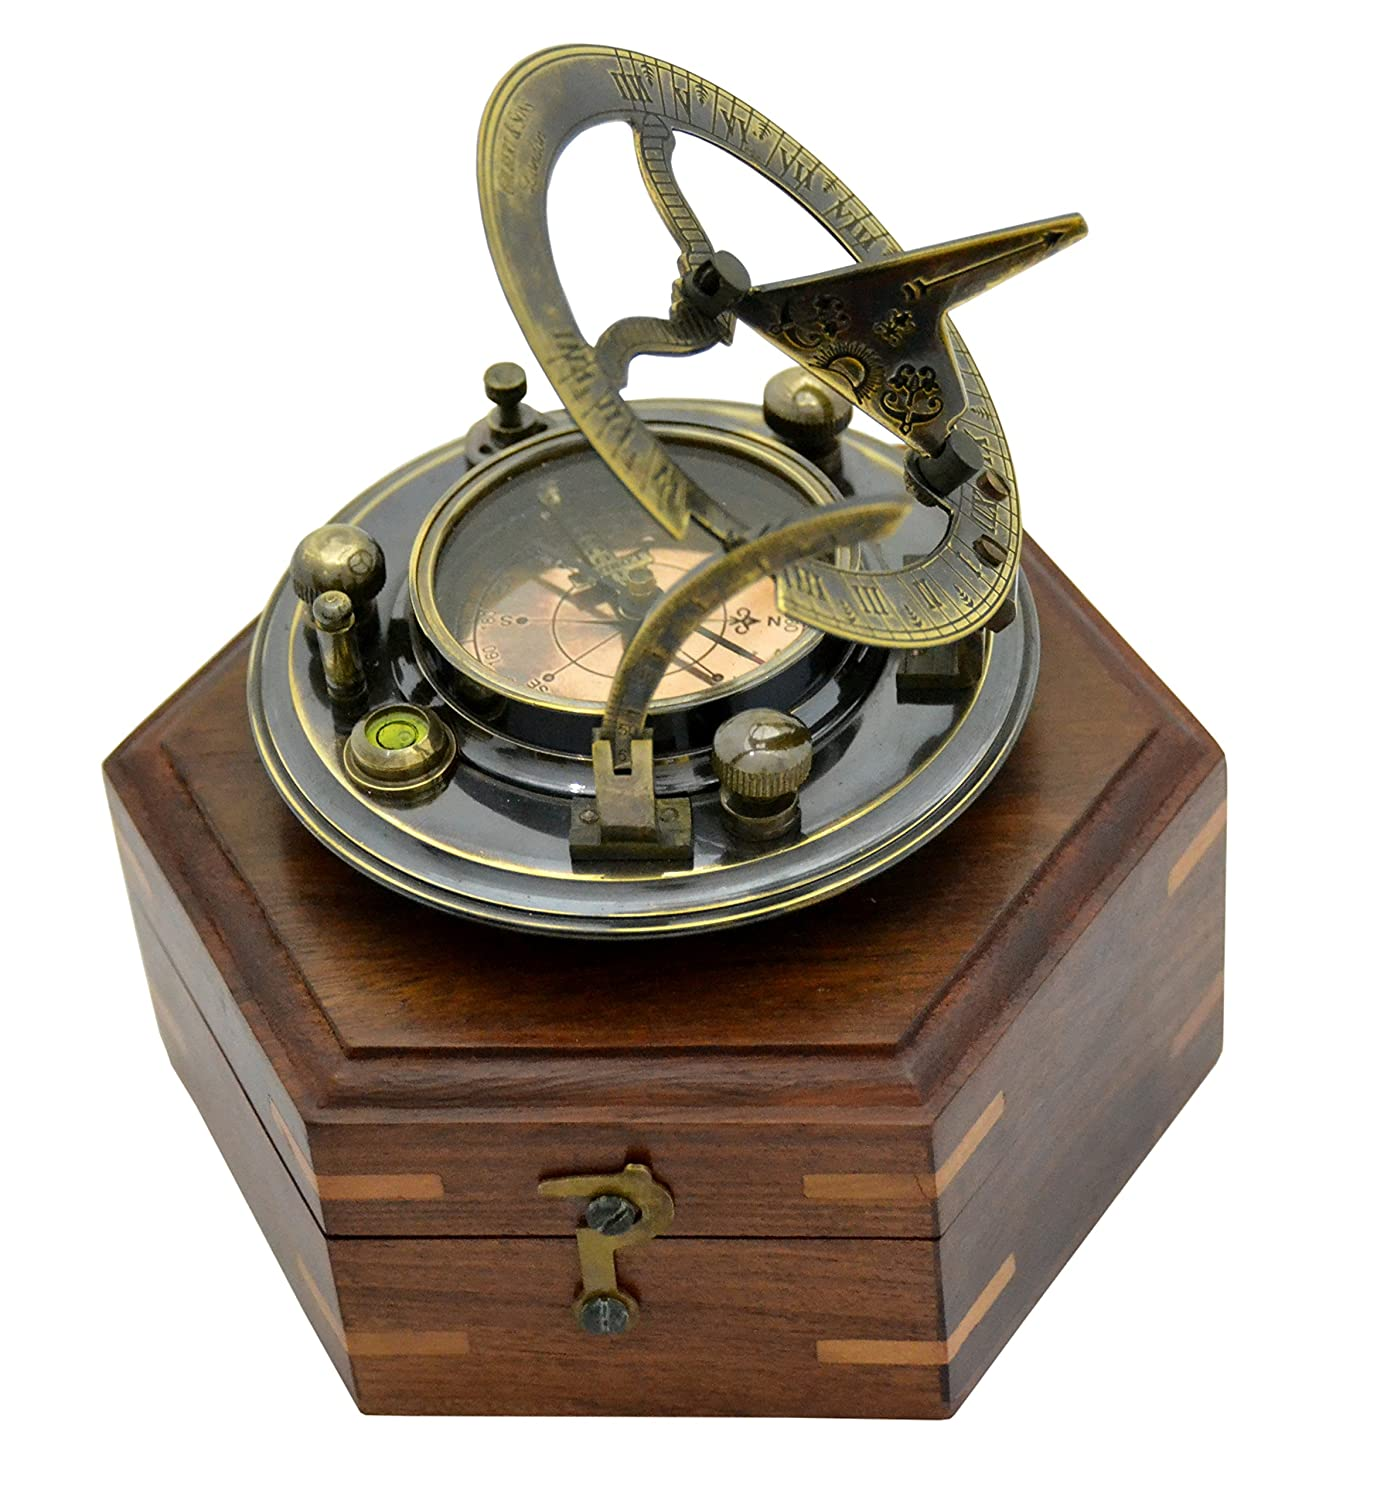 Antique Sundial Compass Replica 3in in Hardwood Box - Solid Brass Pocket Sundial - West London